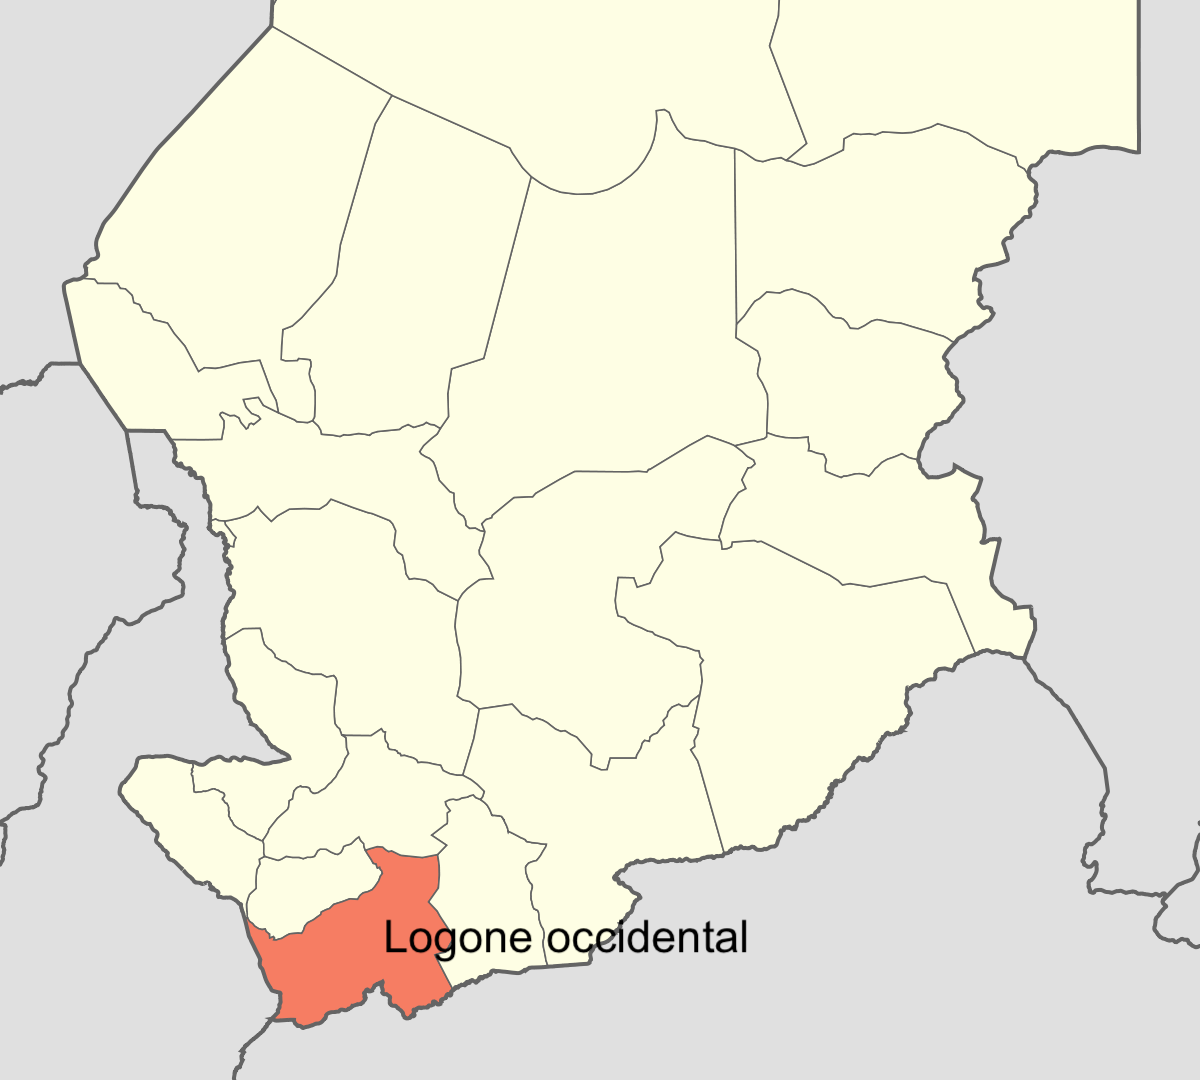 Province du Logone Occidental.